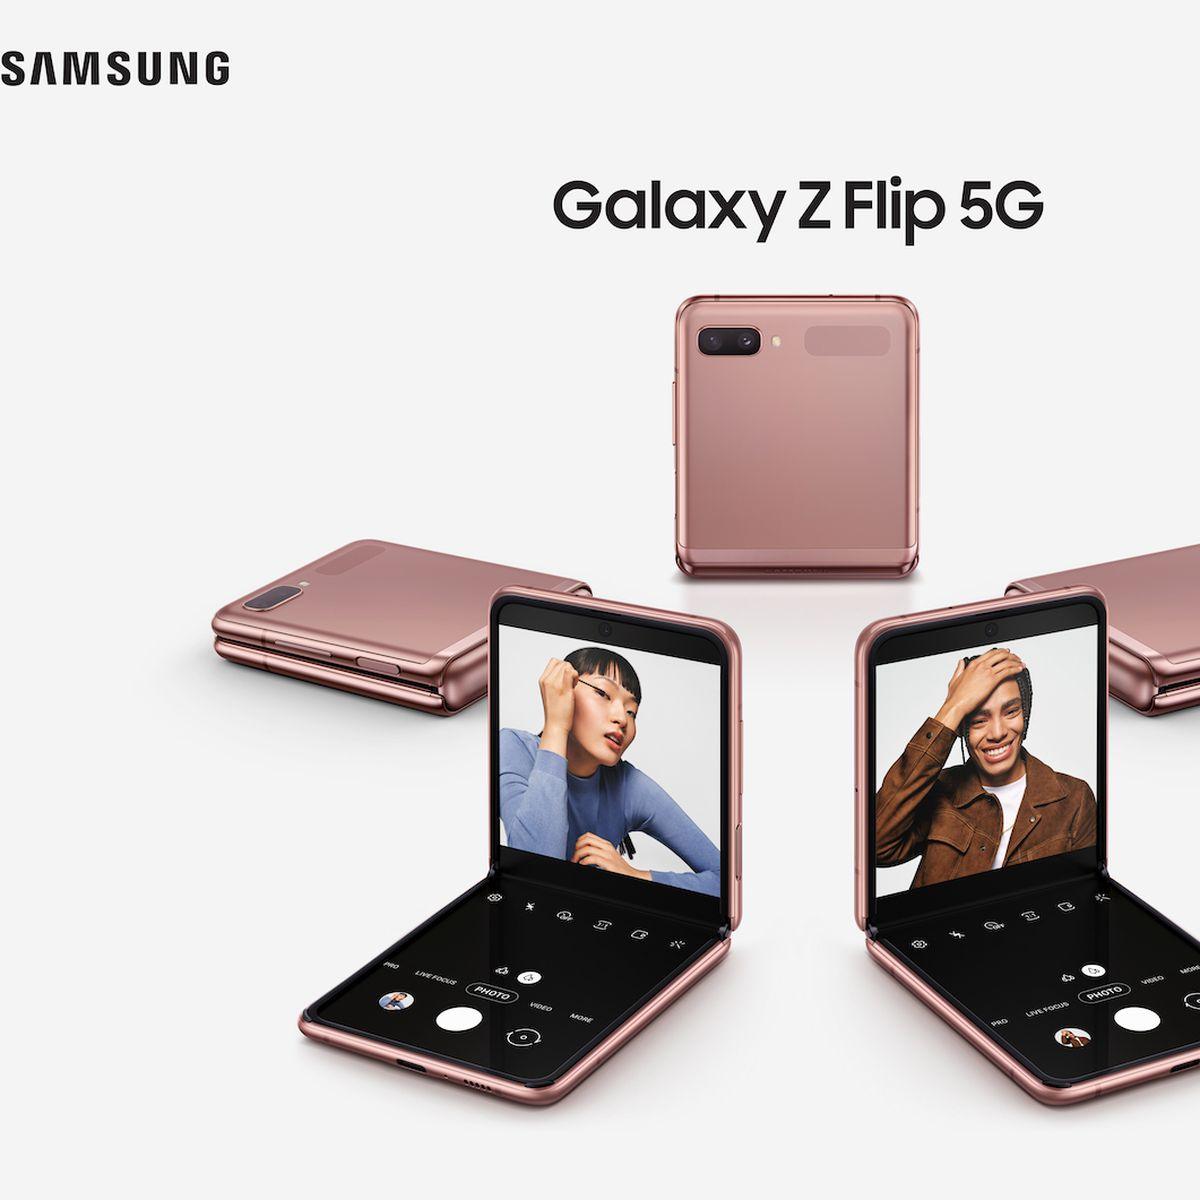 Samsung Announces Galaxy Z Flip 5g Smartphone Starting At 1 449 99 Macrumors